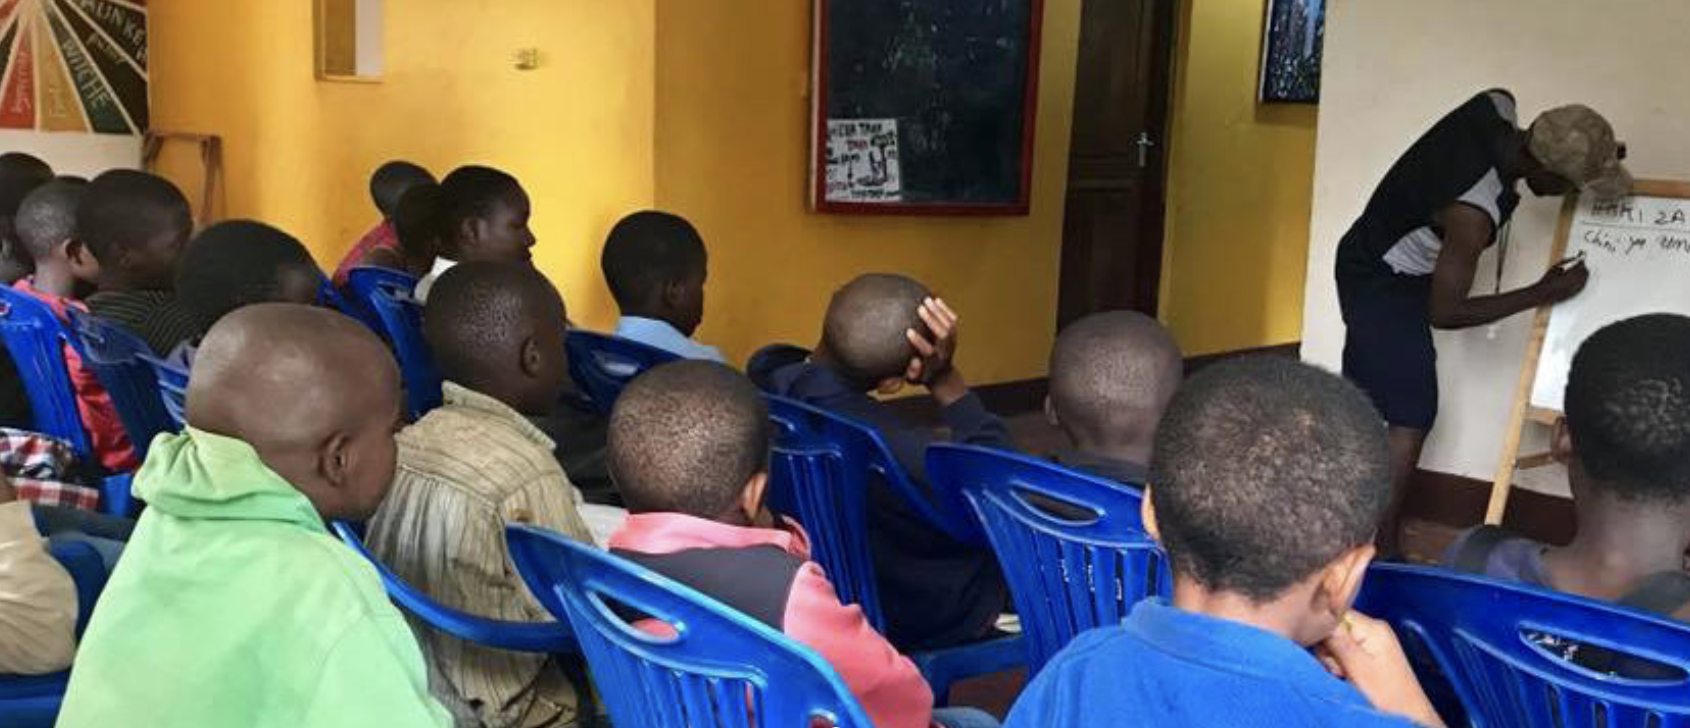 Here are the kids during one of their educational sessions.